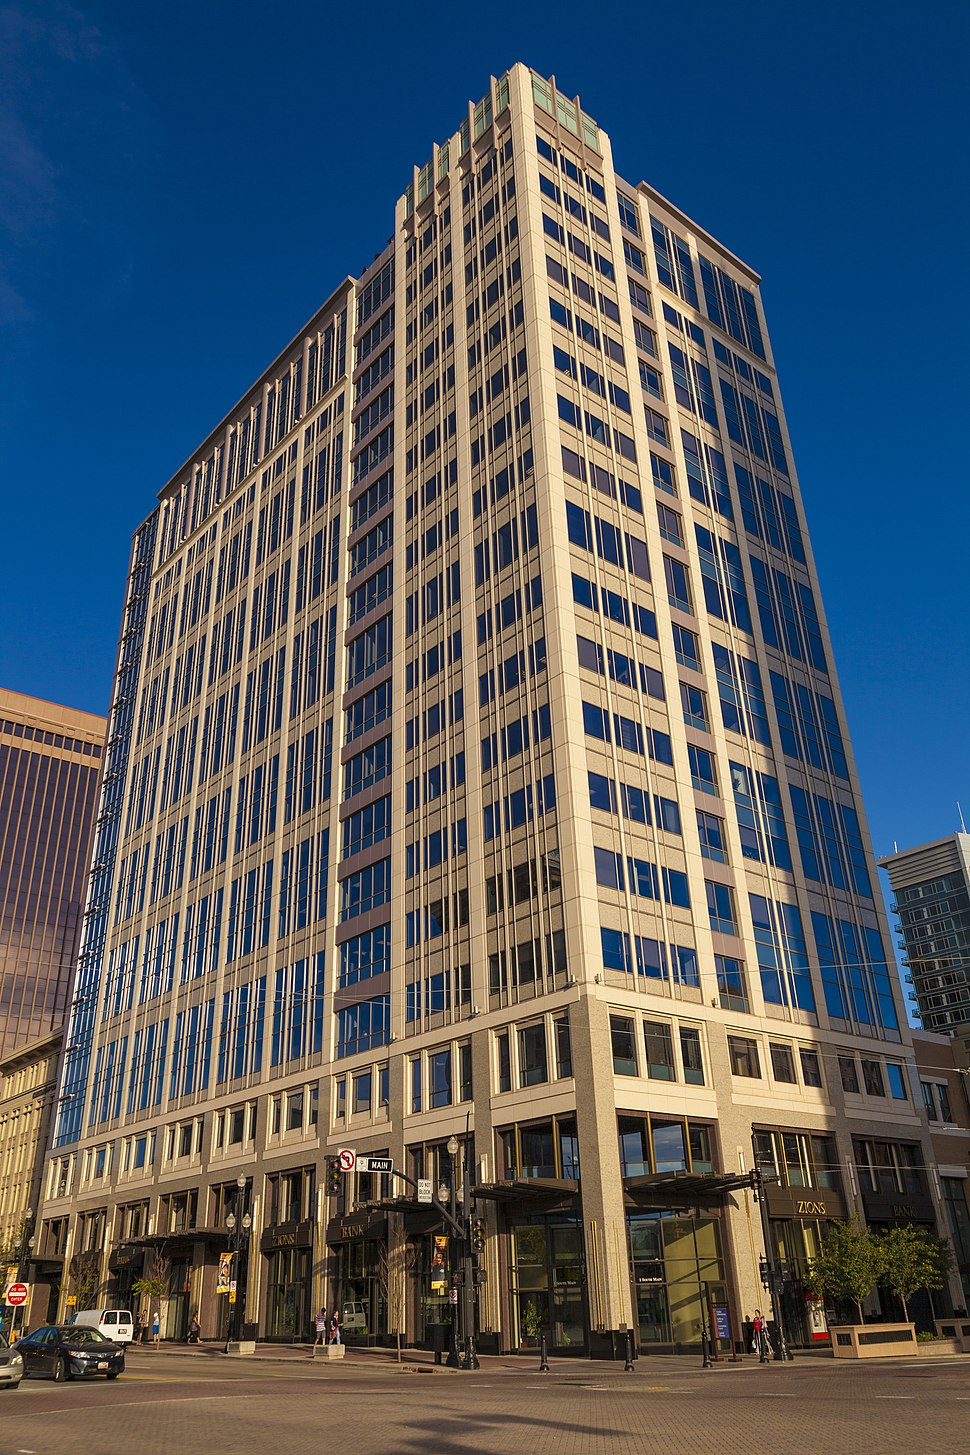 Slc gateway tower east